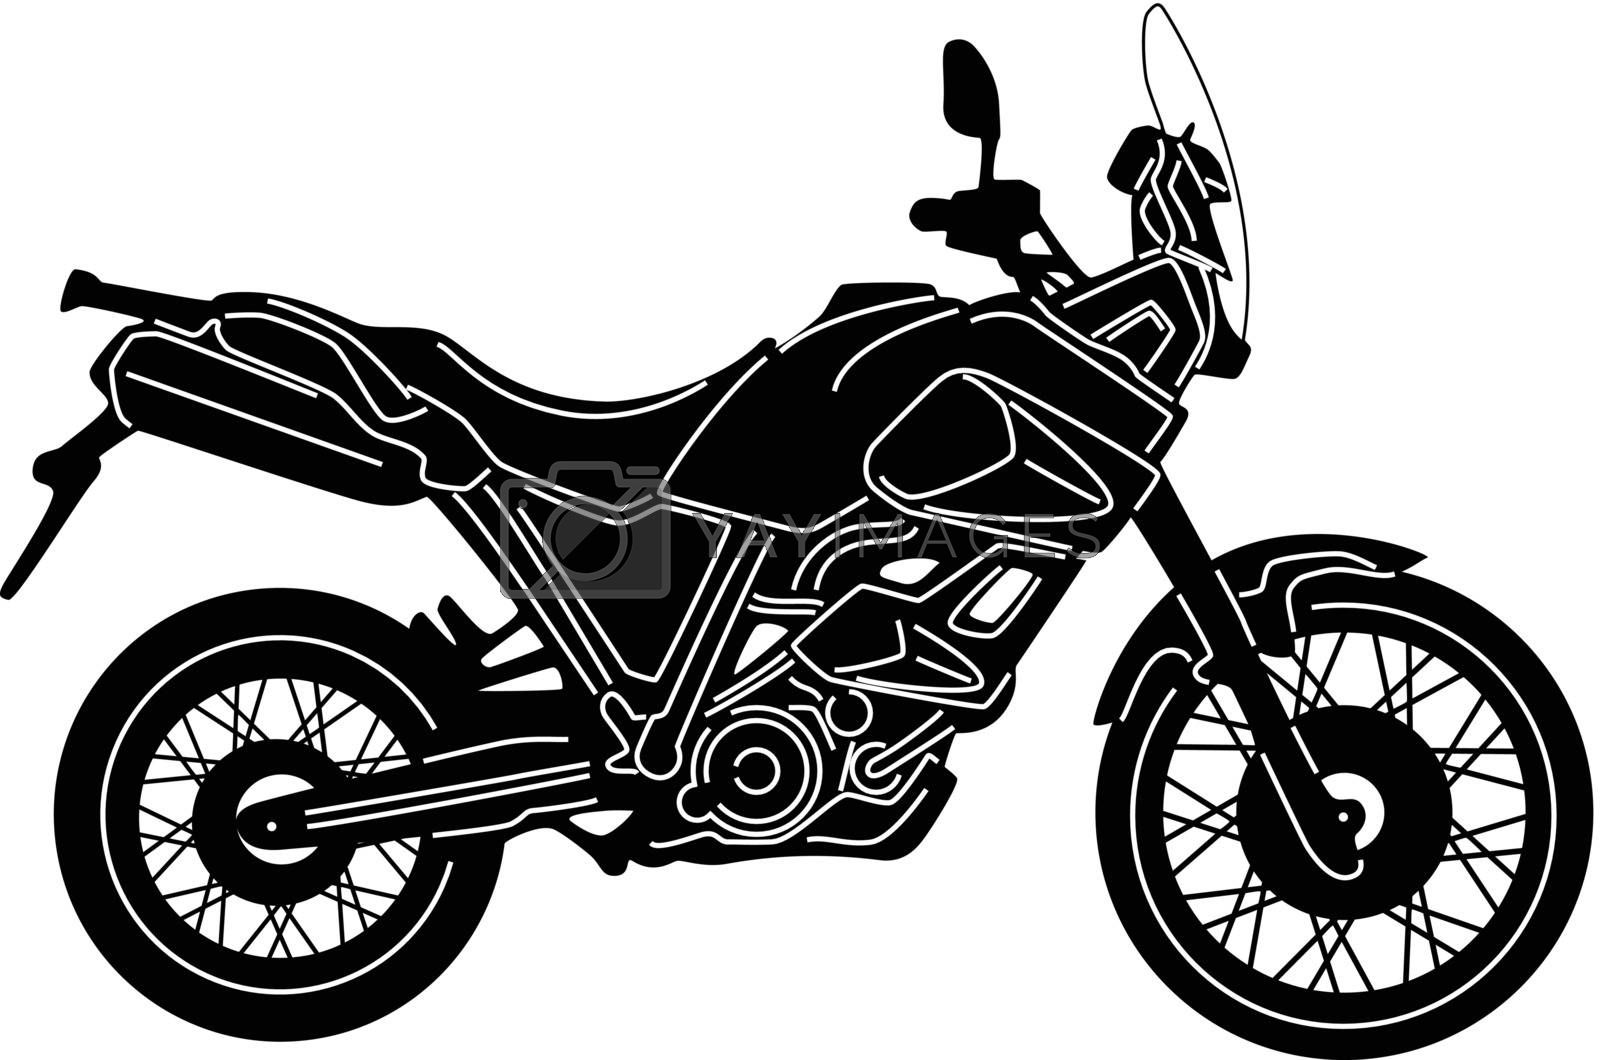 Royalty free image of Motorcycle Silhouette by silverrose1